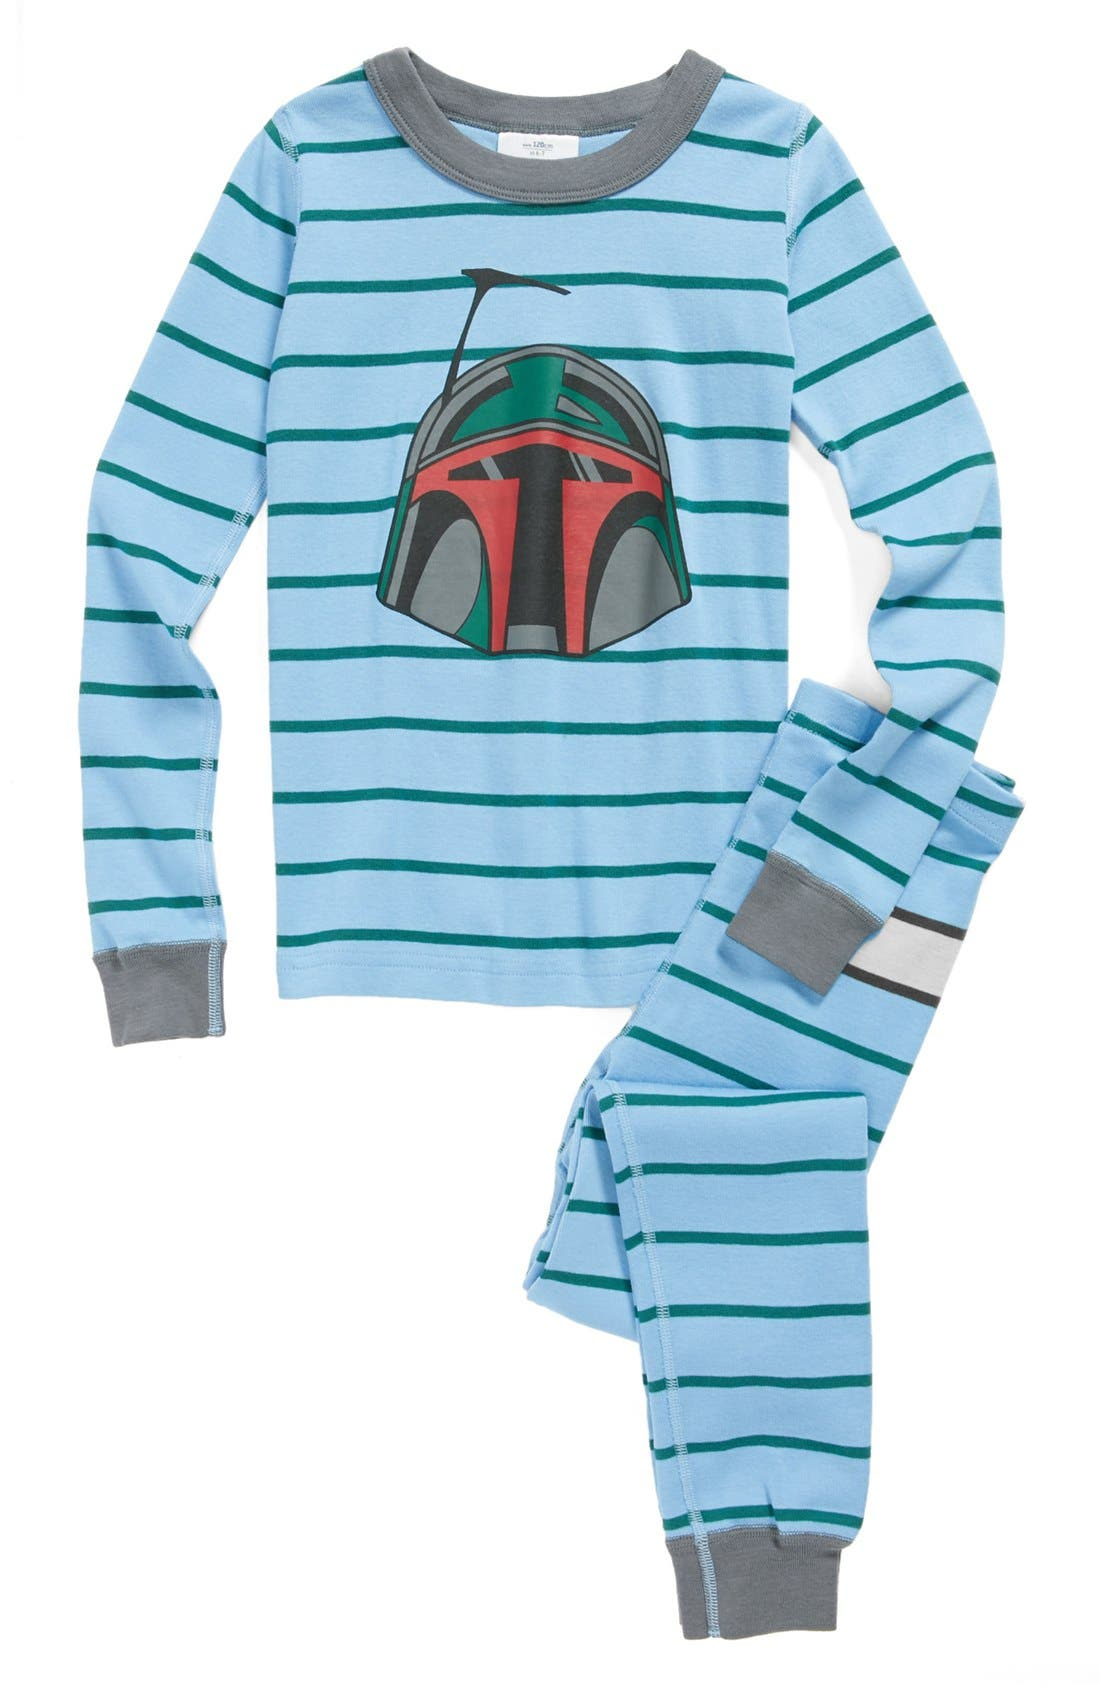 Alternate Image 1 Selected - Hanna Andersson 'Star Wars™ Boba Fett™' Two-Piece Organic Cotton Fitted Pajamas (Toddler Boys)